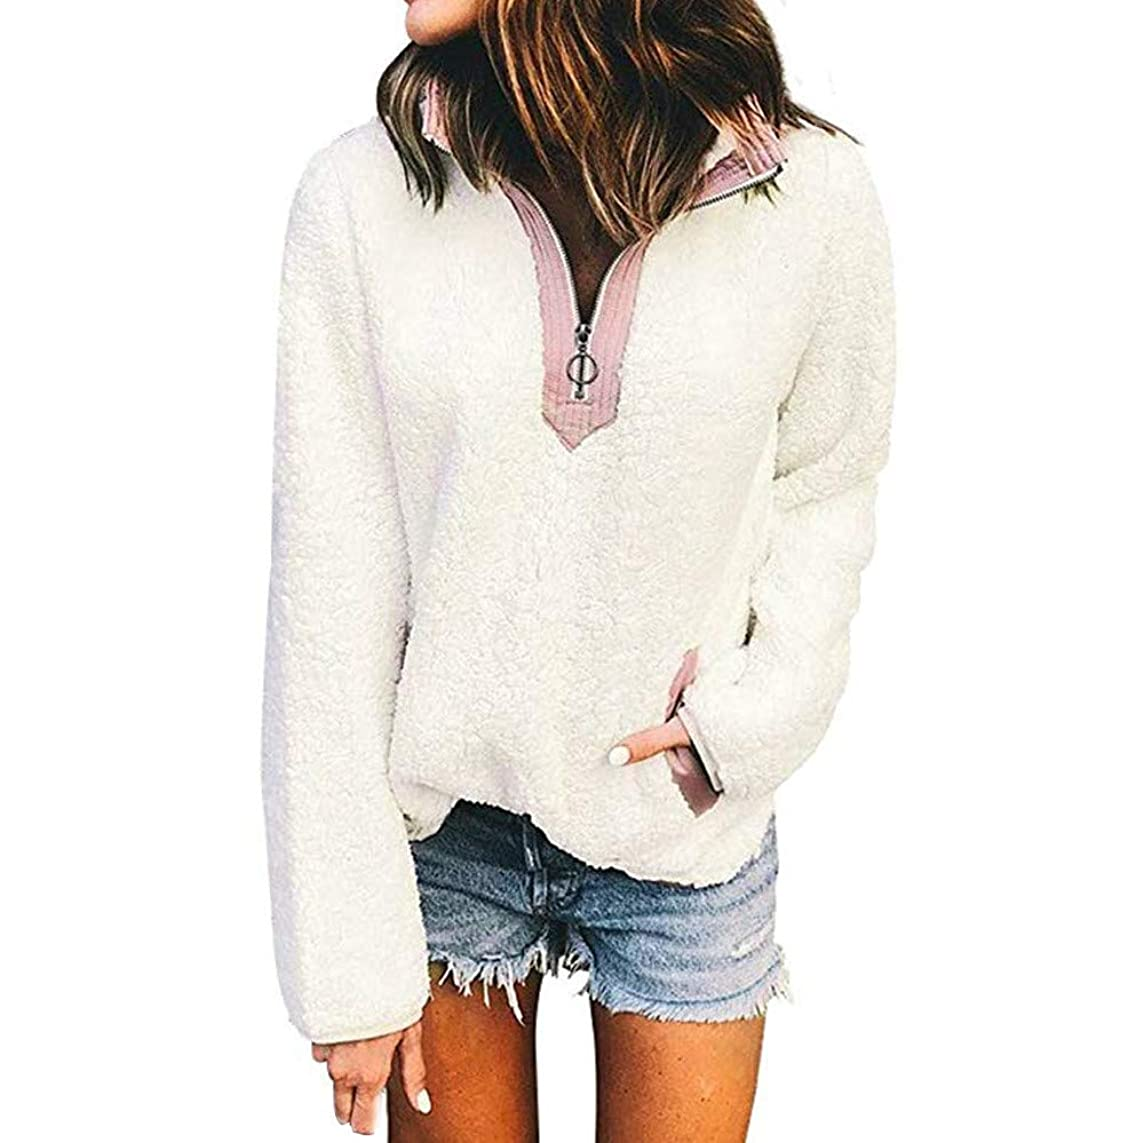 Ulanda Sherpa Pullover Womens Stand Collar Zip Up Solid Color Sherpa Pullover Fuzzy Sweatshirt Tops